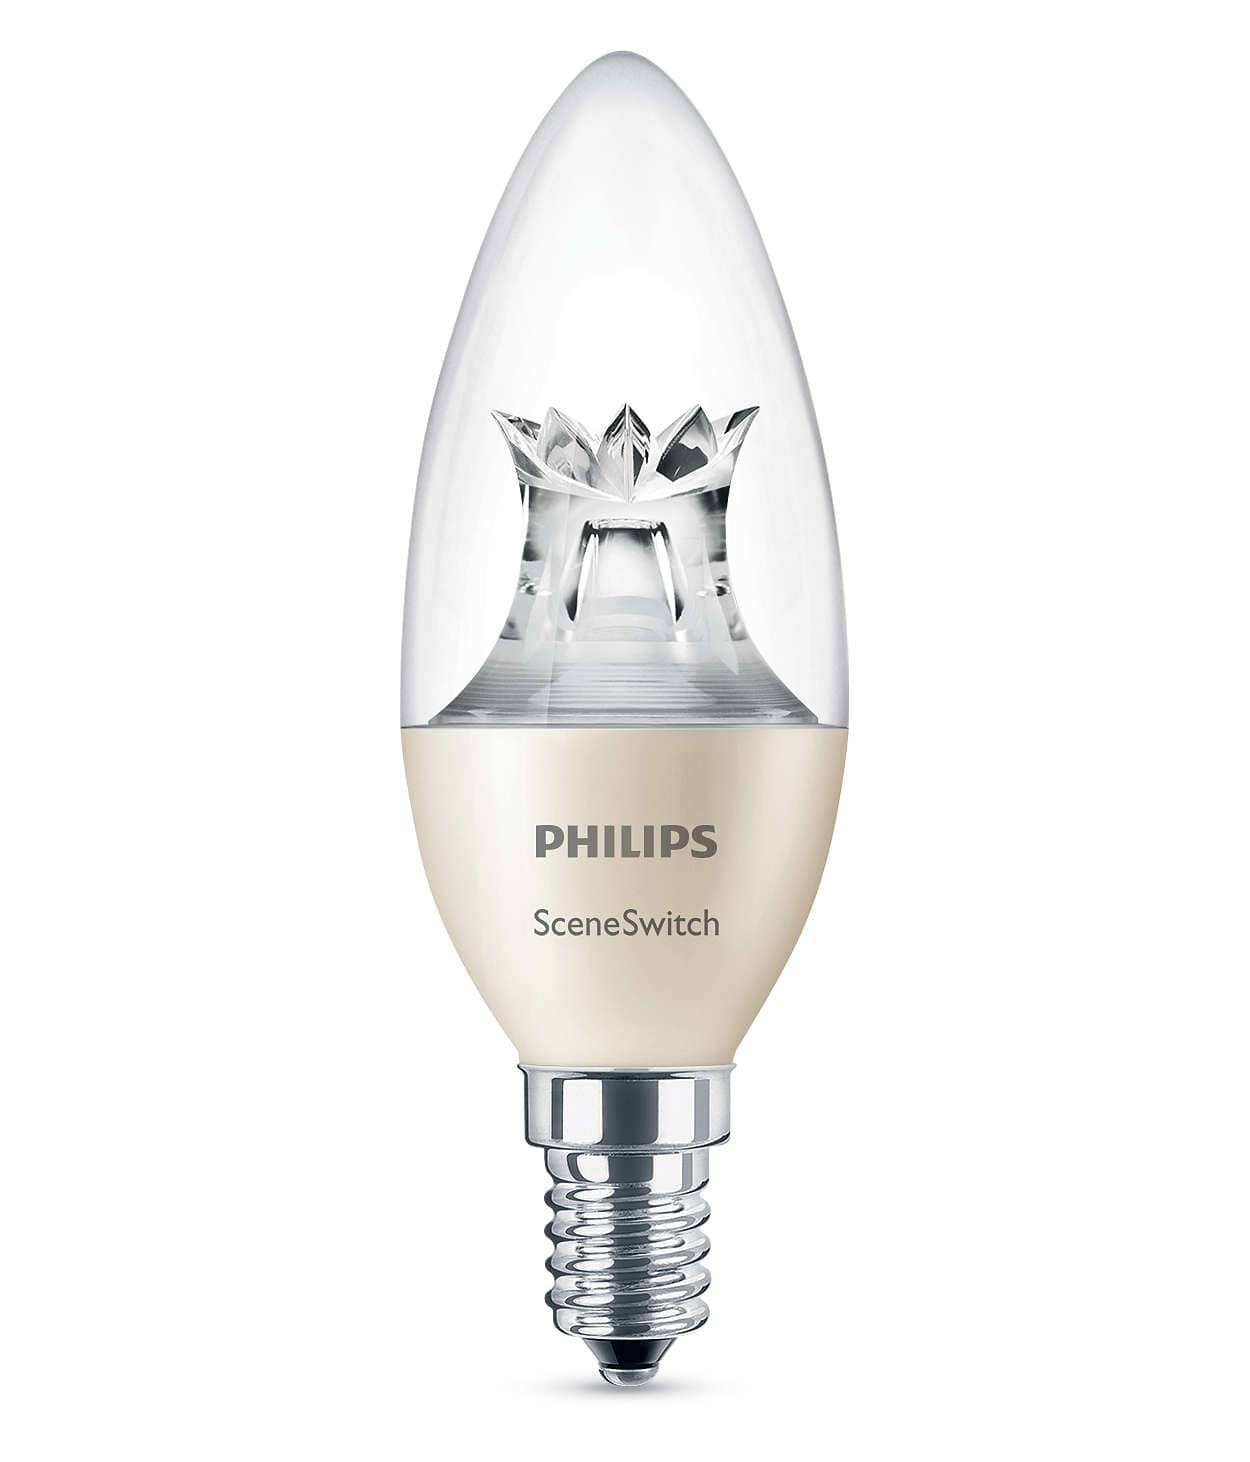 philips e14 led kerze sceneswitch 5 5w 470lm warmweiss jetzt kaufen. Black Bedroom Furniture Sets. Home Design Ideas